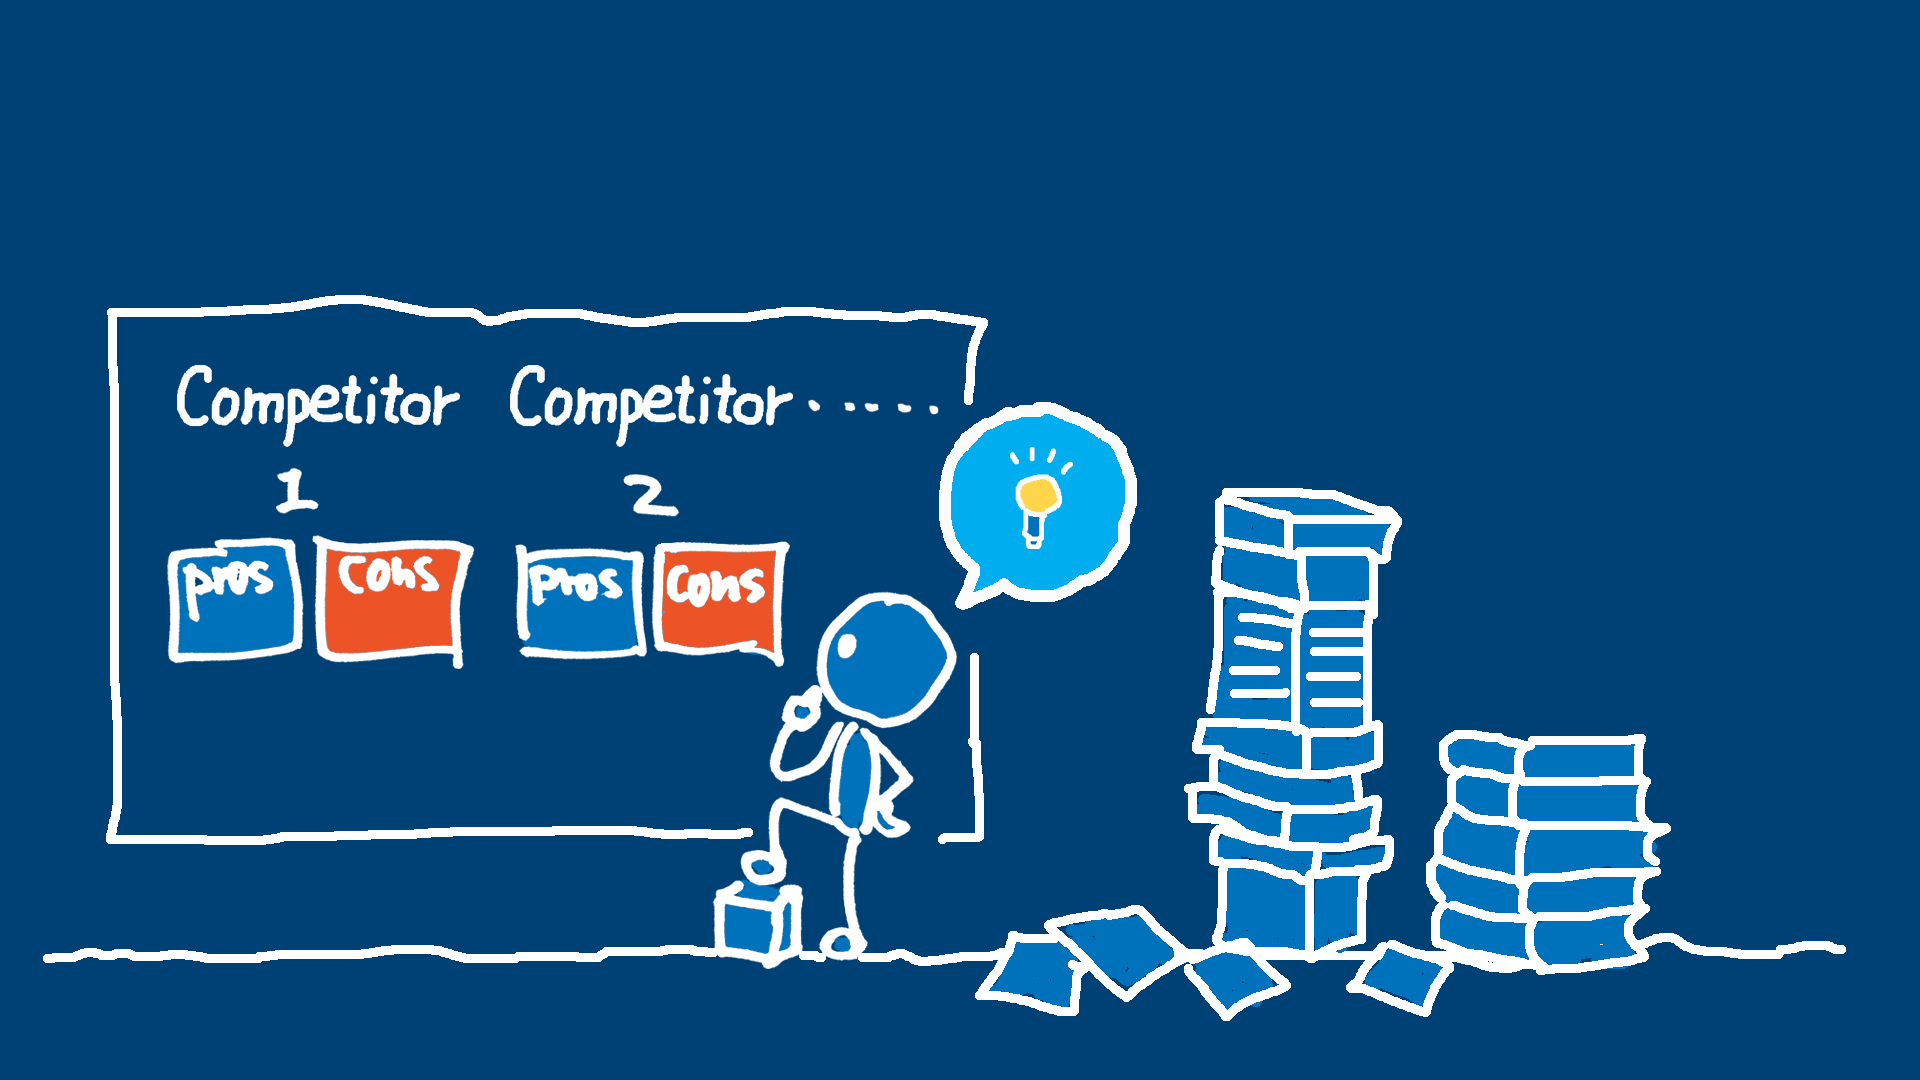 An illustration showing a UX designer working on competitive analysis.